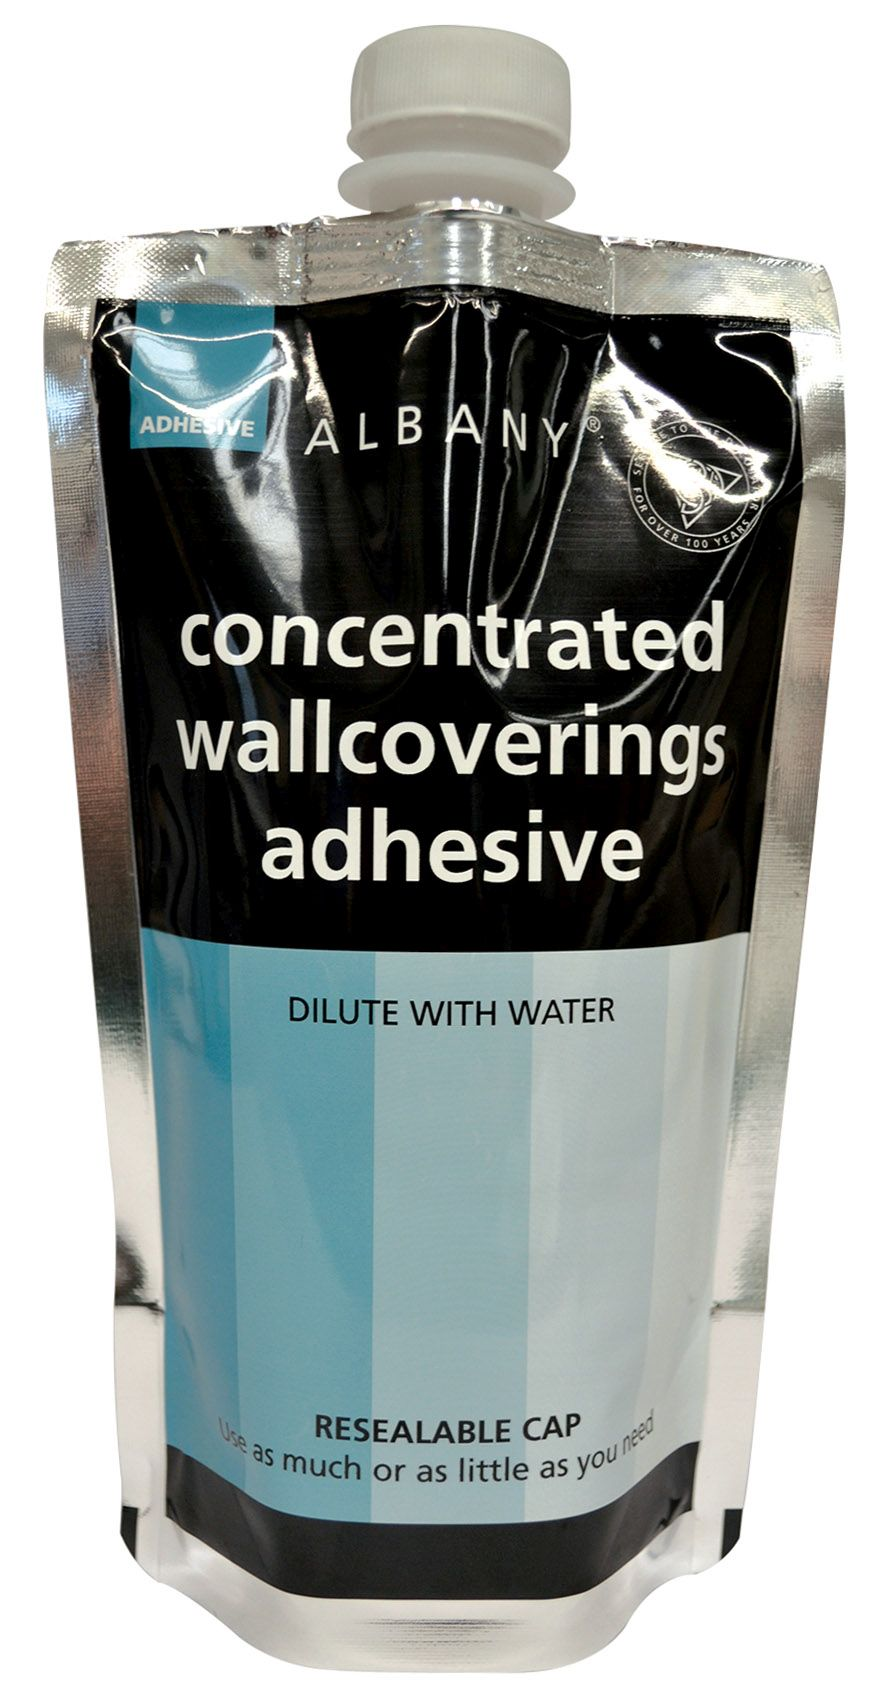 Wallpaperdirect Albany Concentrated Adhesive - Product code: DE0561005Q